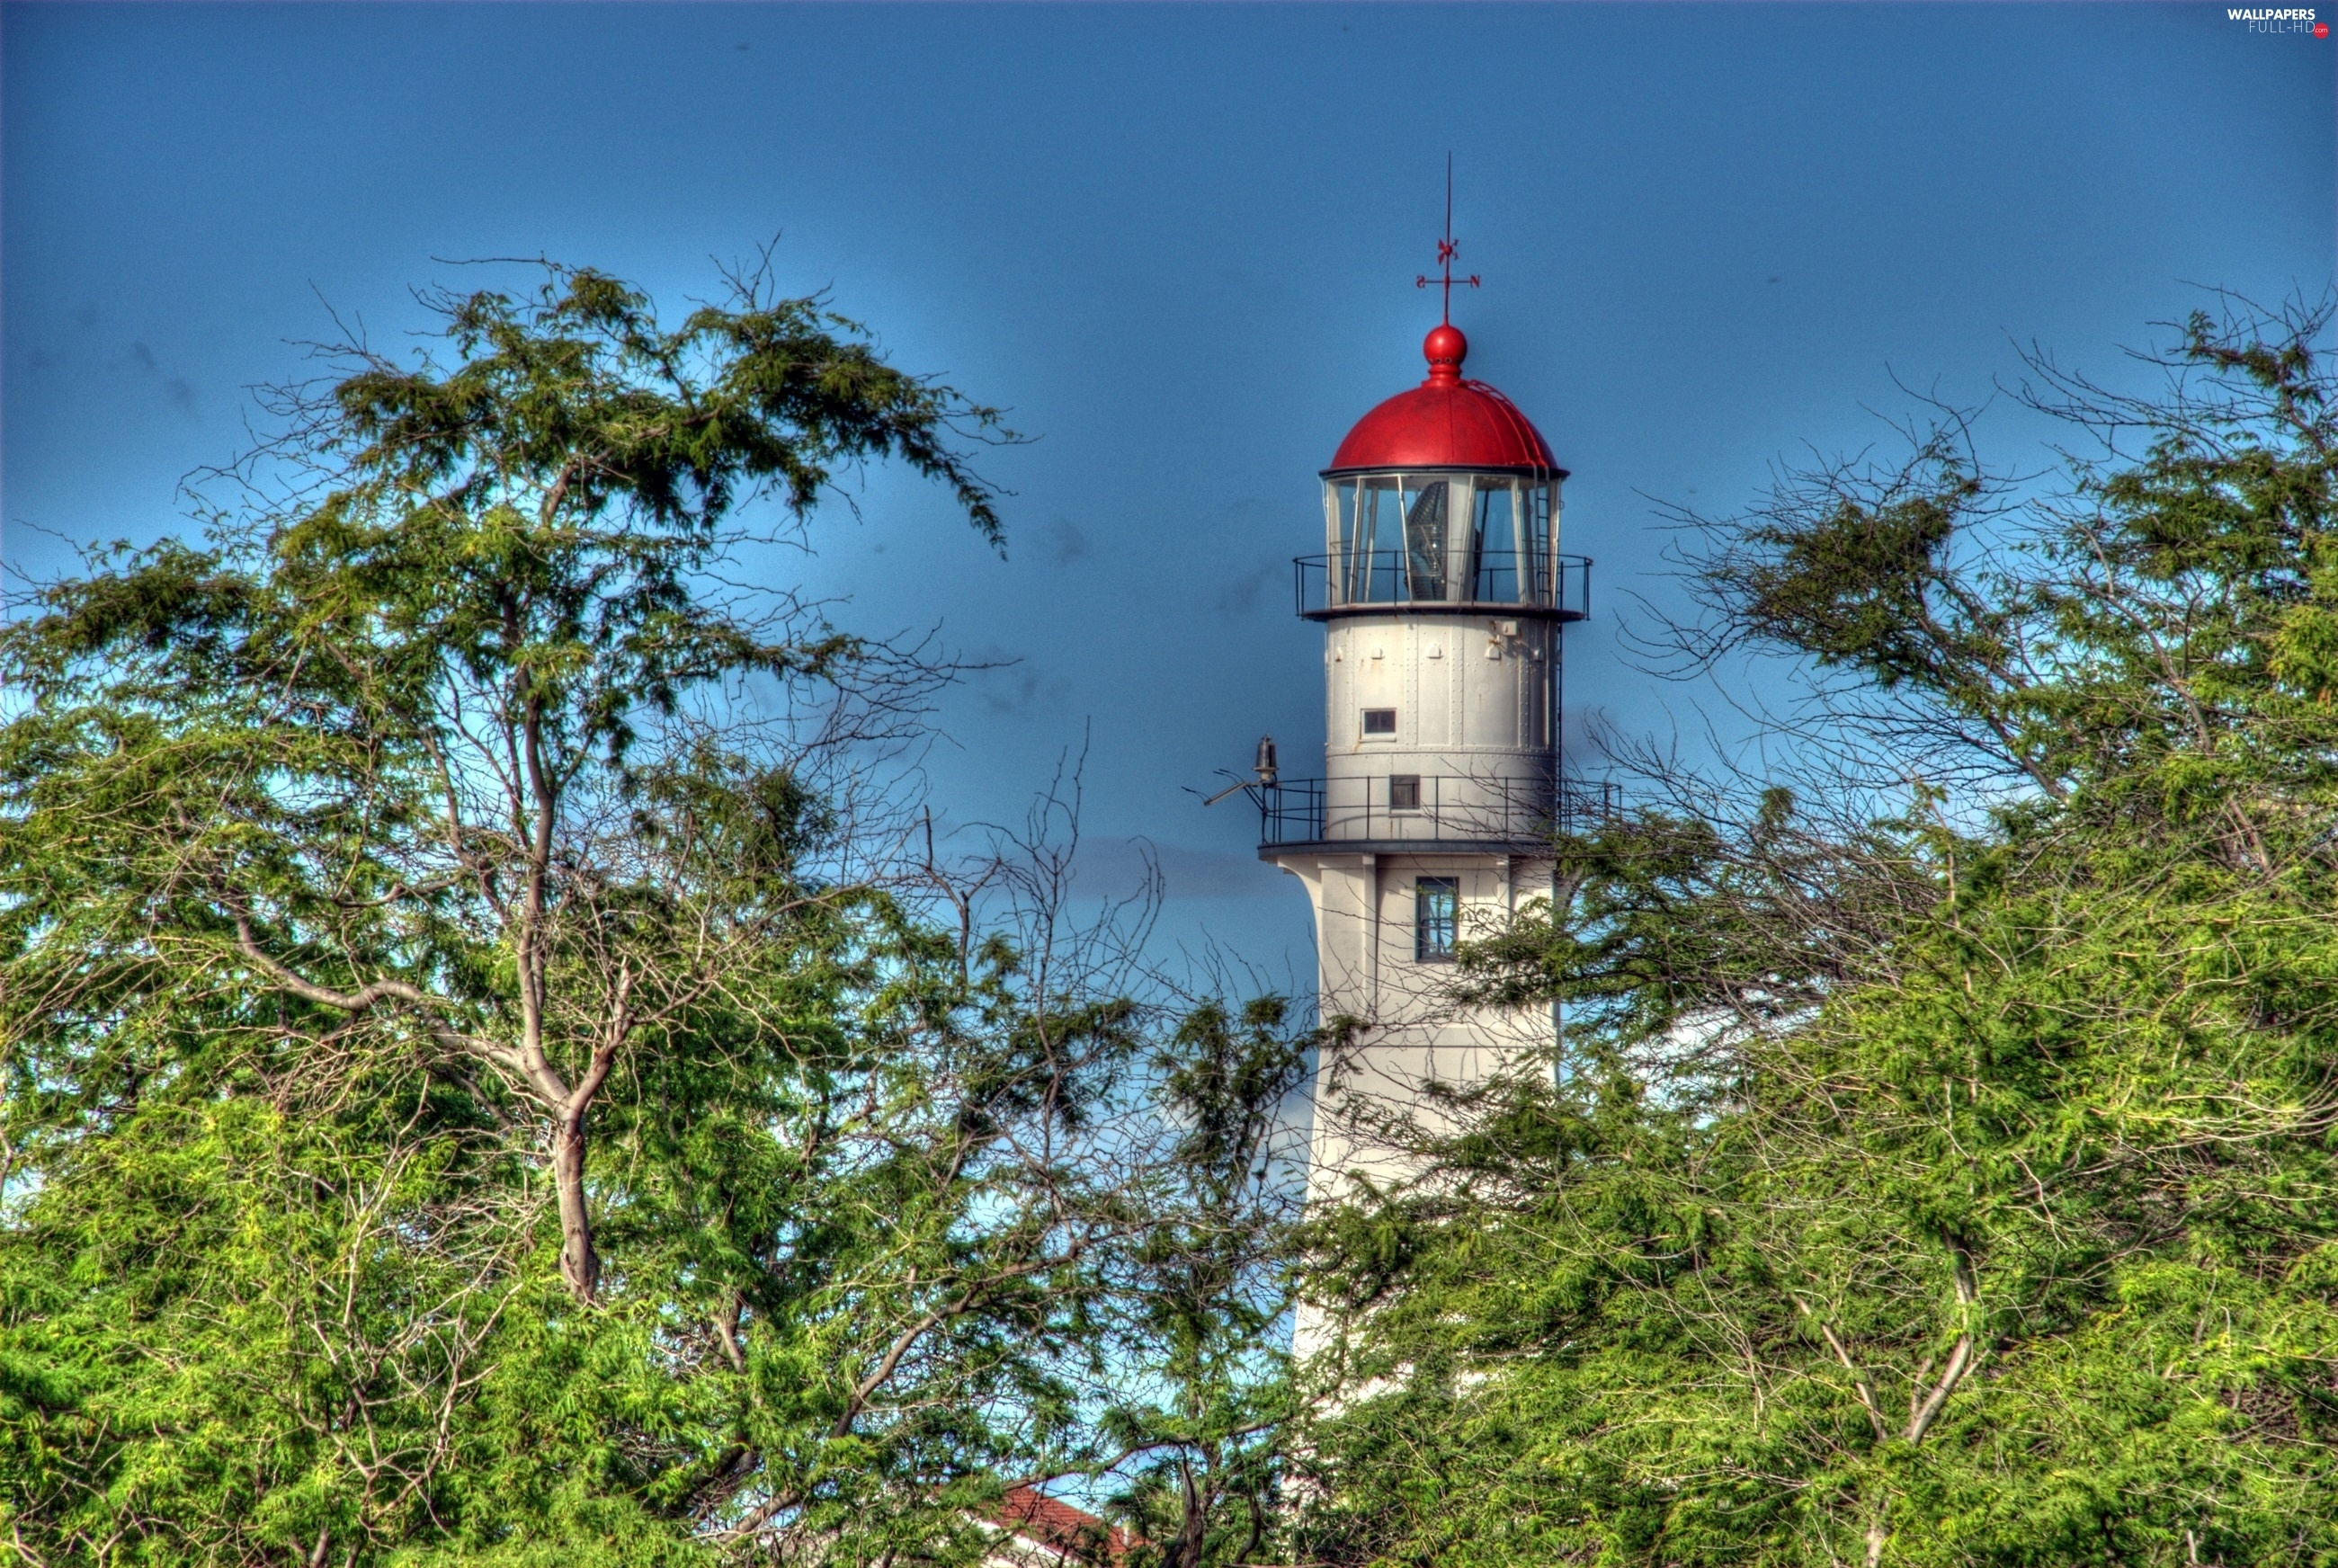 viewes, trees, Lighthouse, maritime